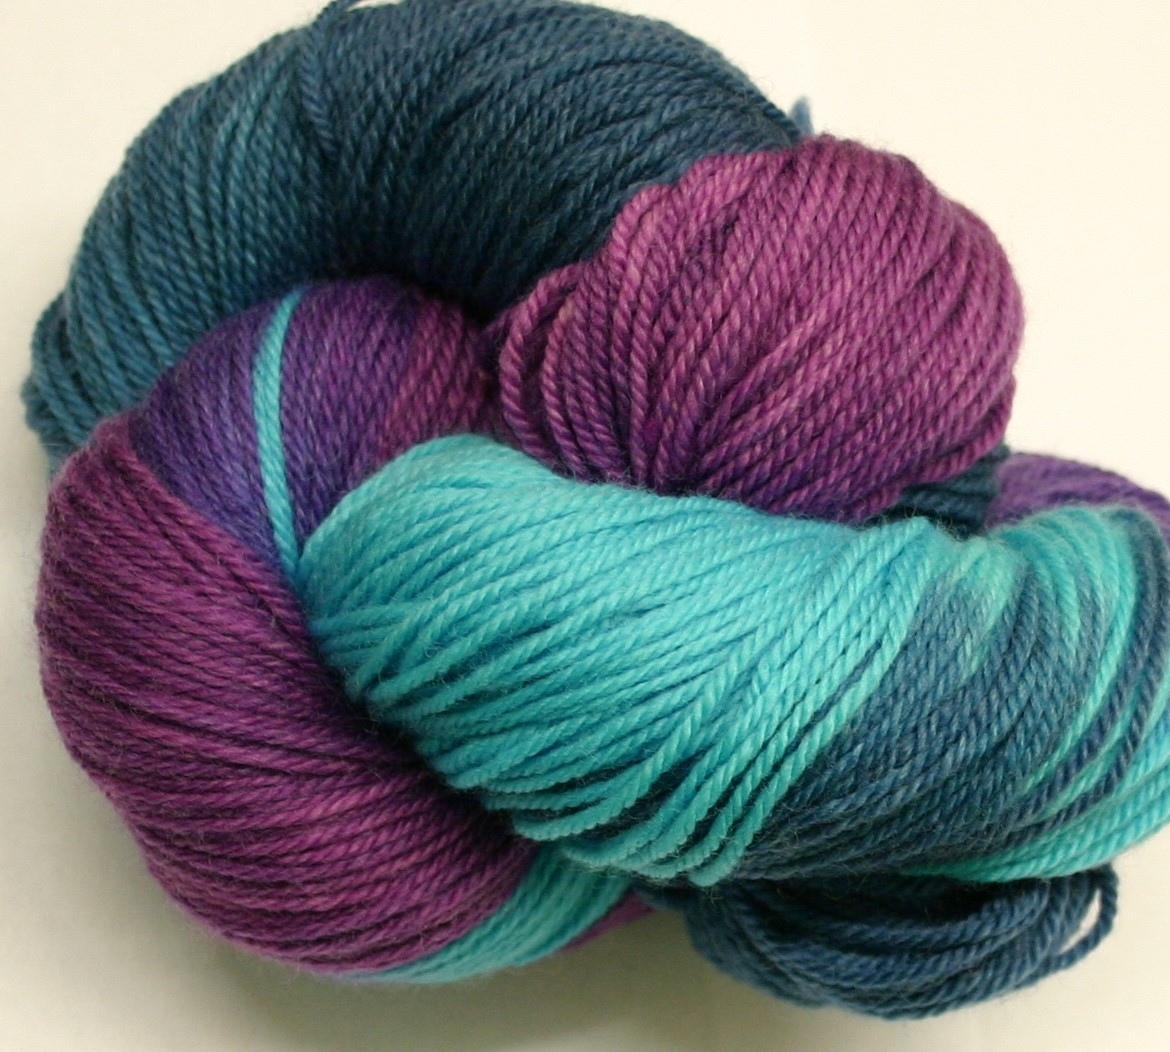 Ivy Brambles Enrapture Light Yarn - 208 Blue Orchid